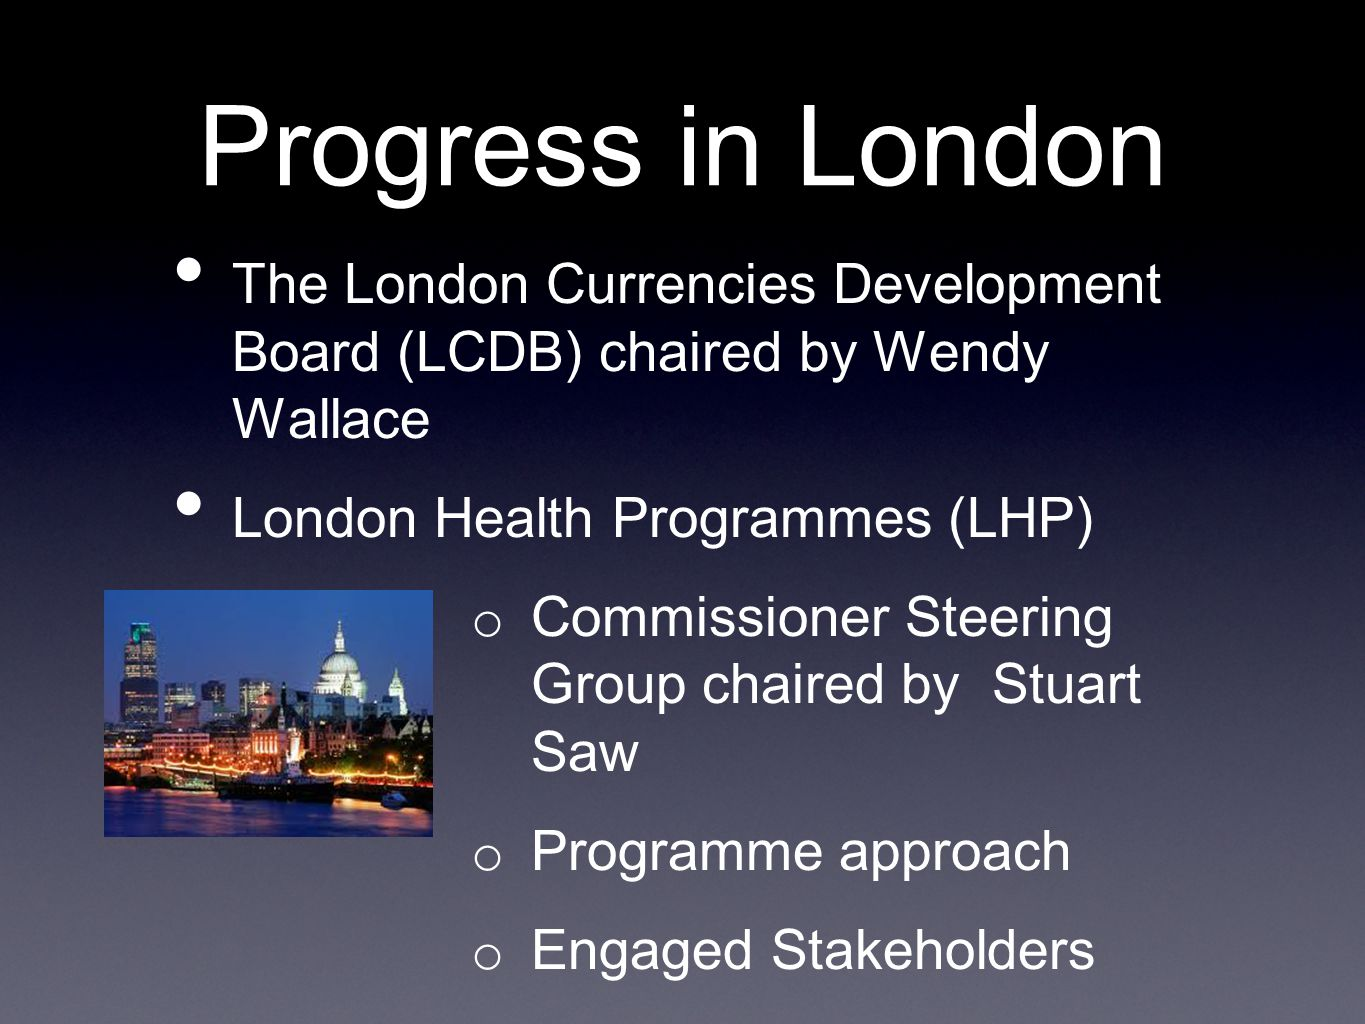 Progress in London The London Currencies Development Board (LCDB) chaired by Wendy Wallace London Health Programmes (LHP) o Commissioner Steering Grou